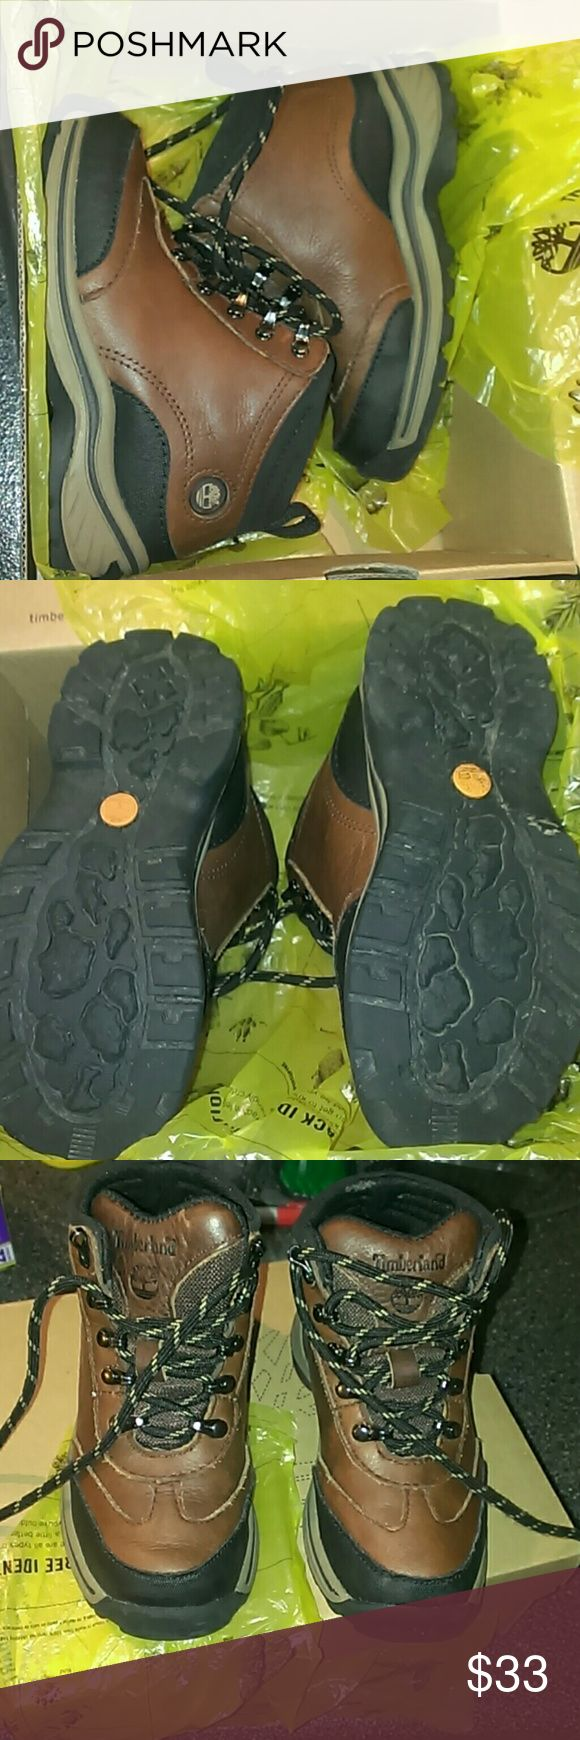 Boy Timberland boots EUC practically brand new size 10.5c Timberland Shoes Boots